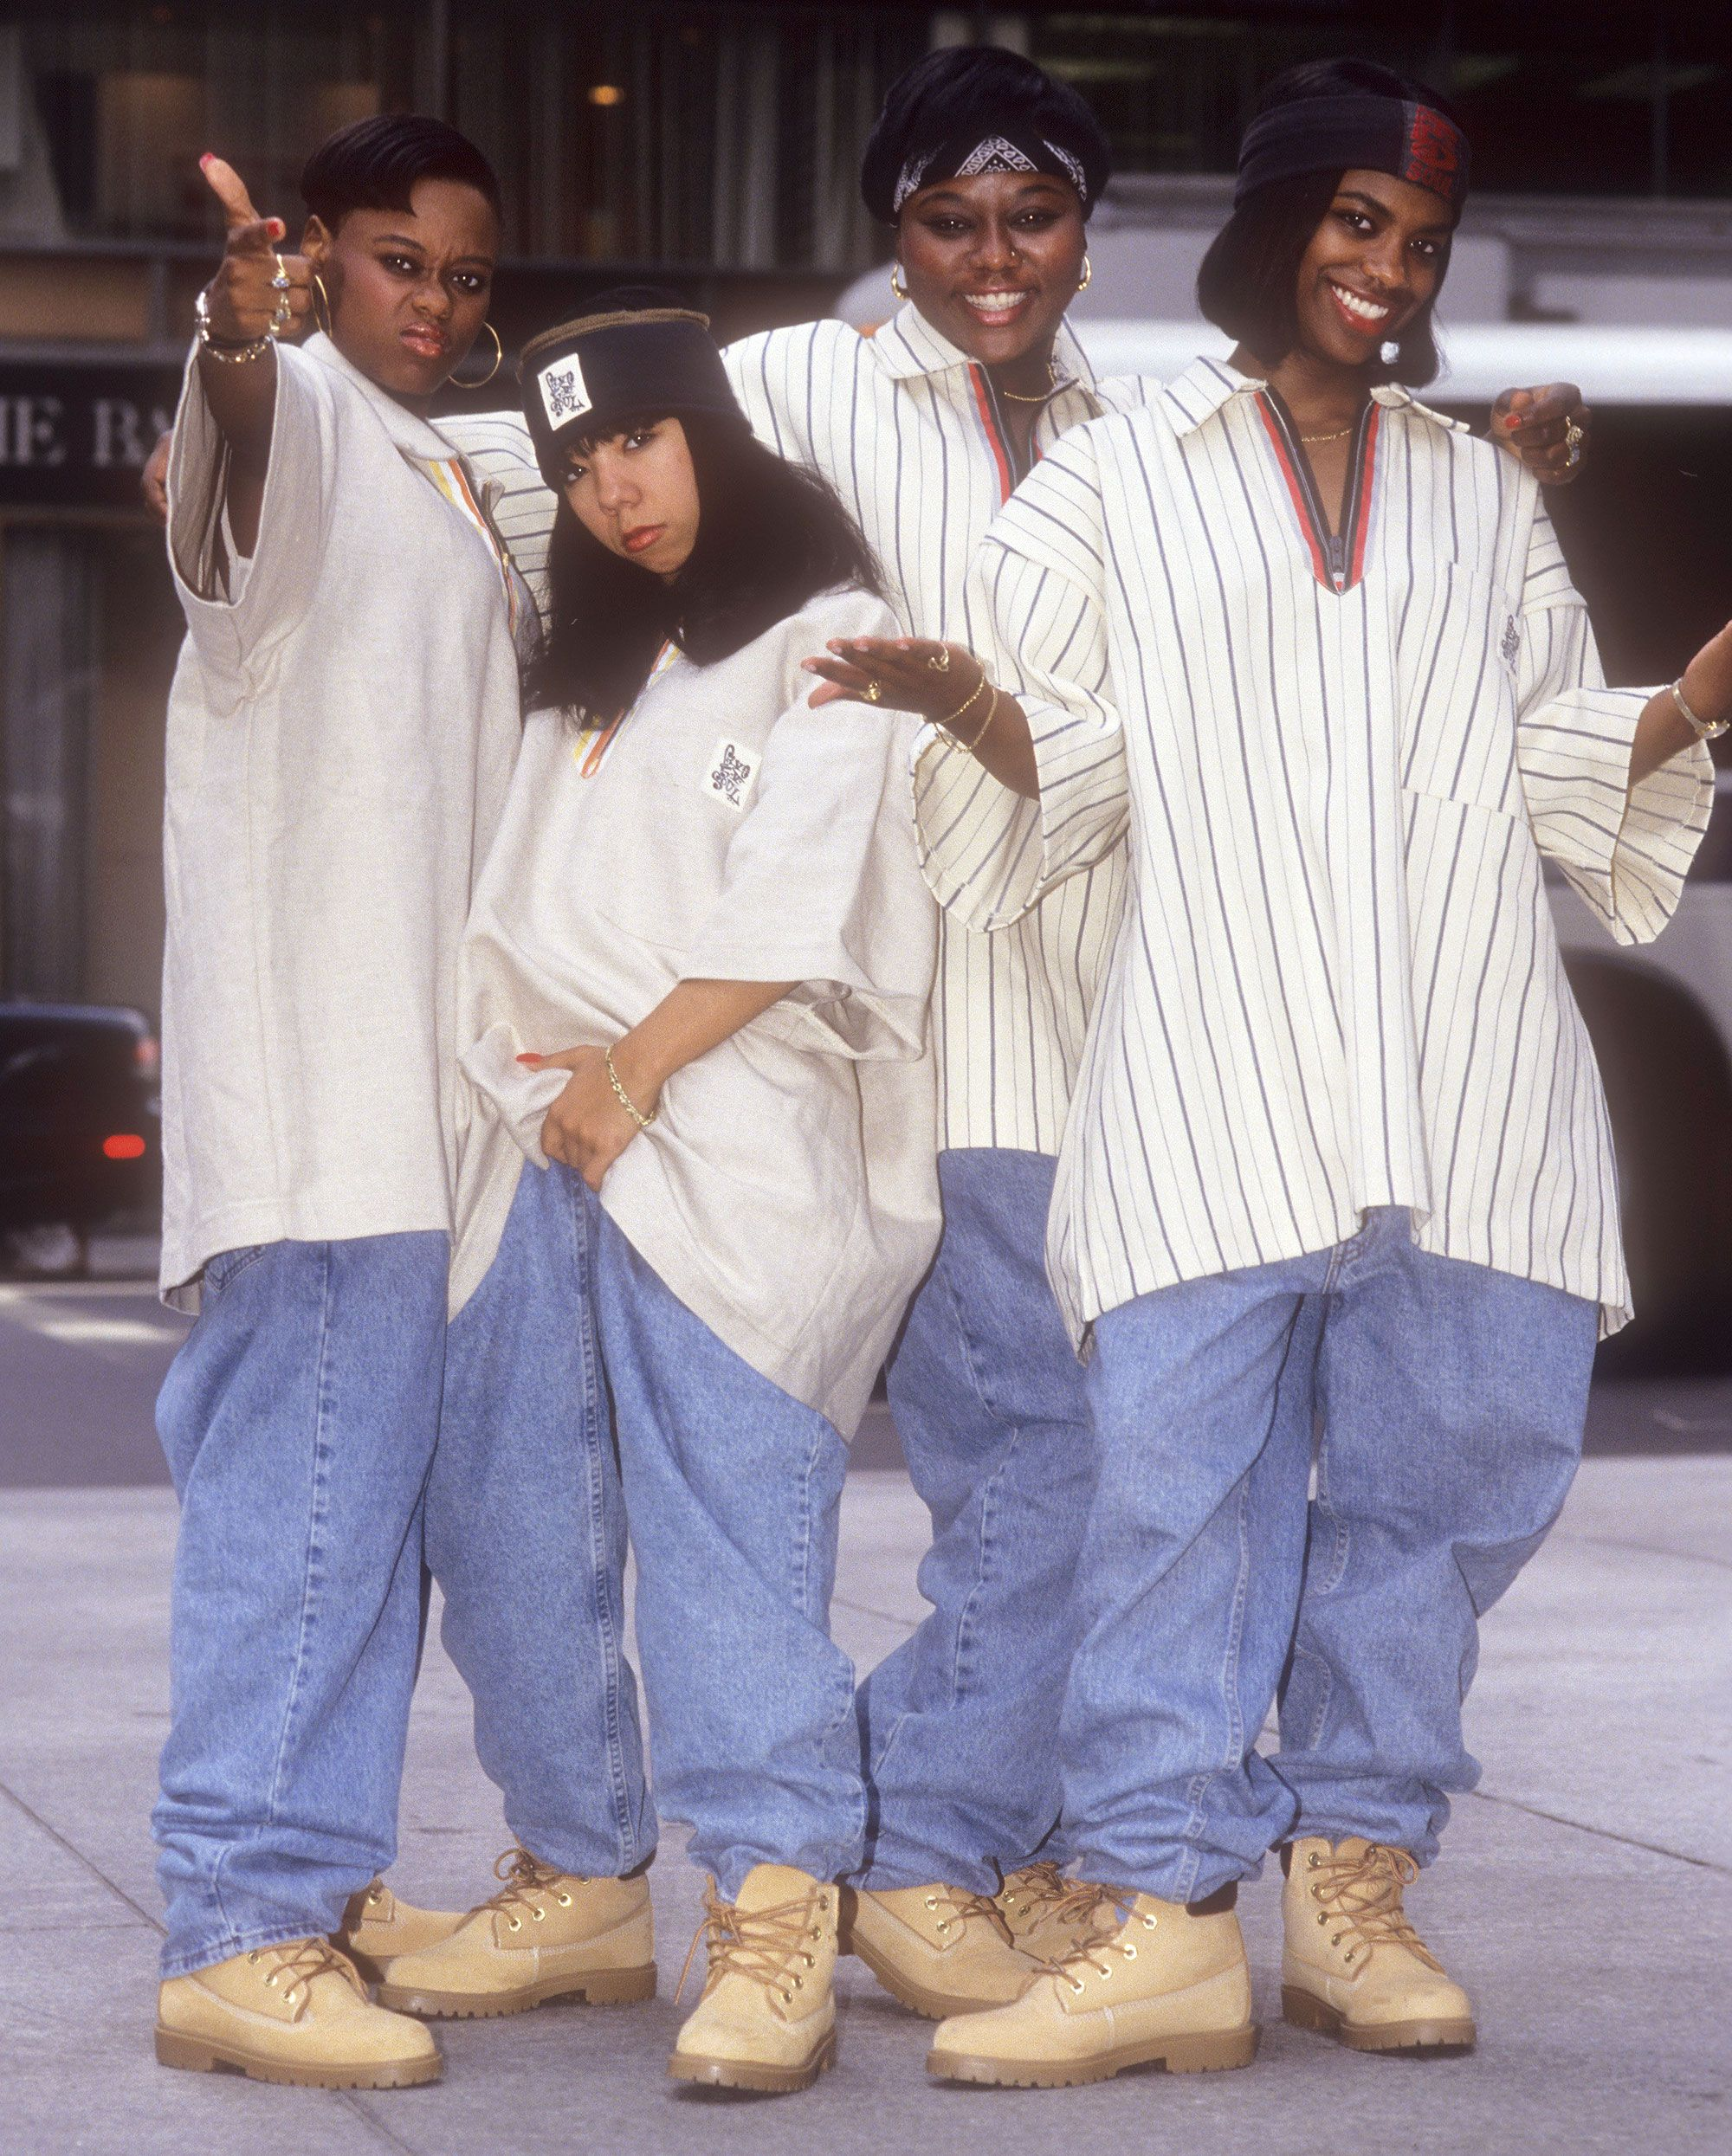 Still Kickin It Xscape Reuniting 25 Years After Debut Album For New Bravo Series 90s Hip Hop Fashion Hip Hop Outfits 90s Fashion